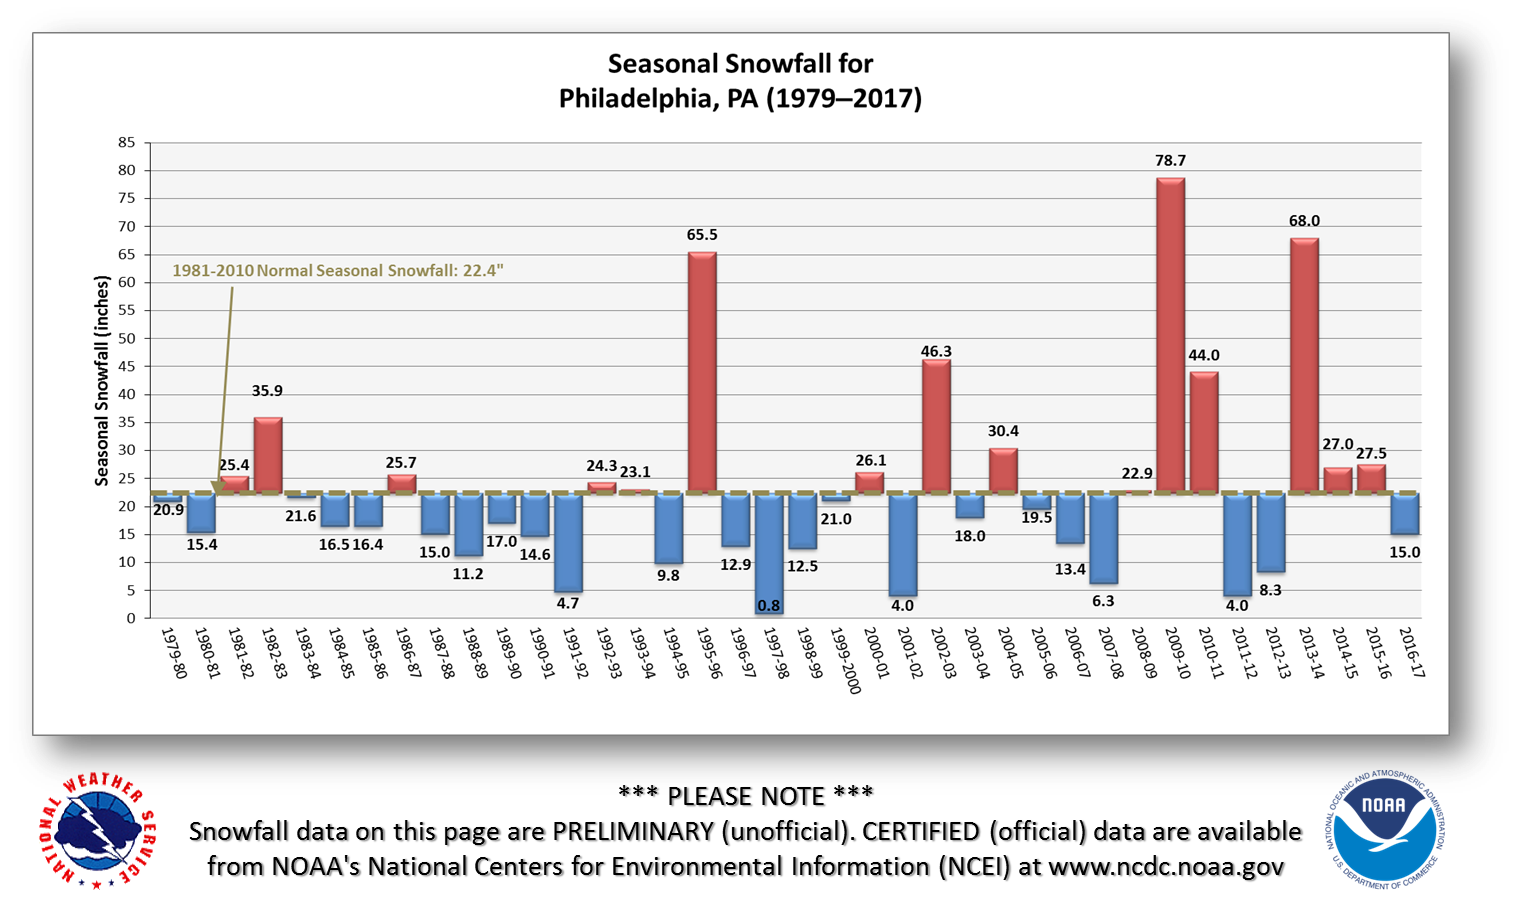 PHL_Seasonal_Snowfall_since_1979.png